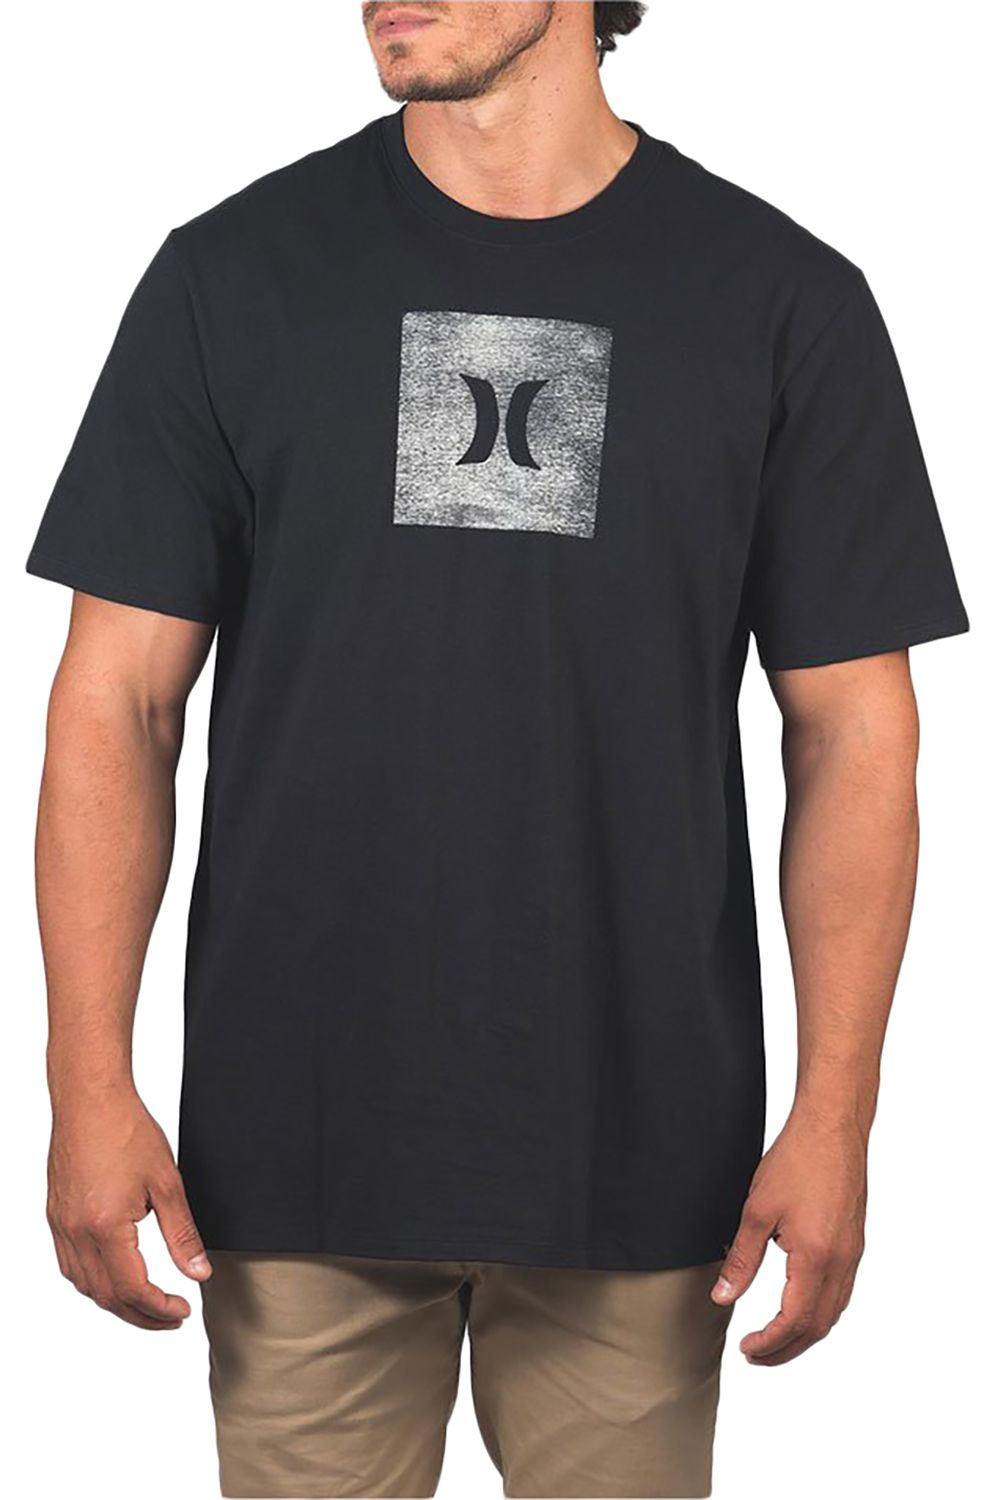 T-Shirt Hurley M CORE ICON BOX TEXTURE S/S Black